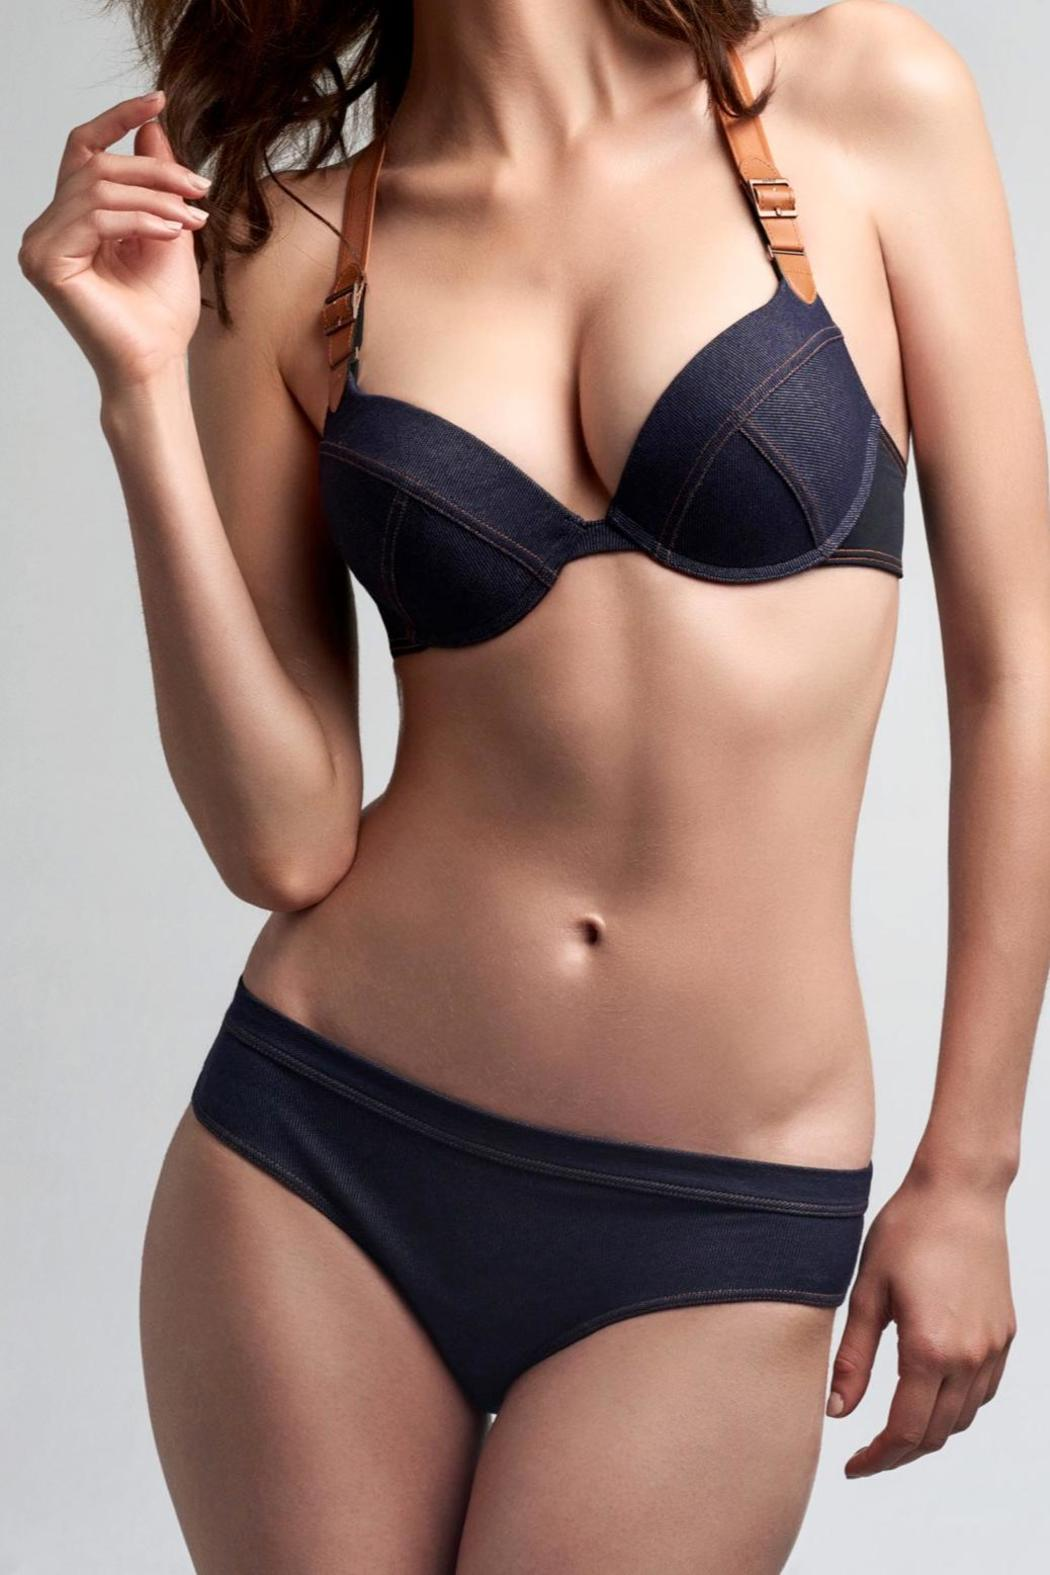 marlies dekkers Denim Brazilian Briefs - Main Image